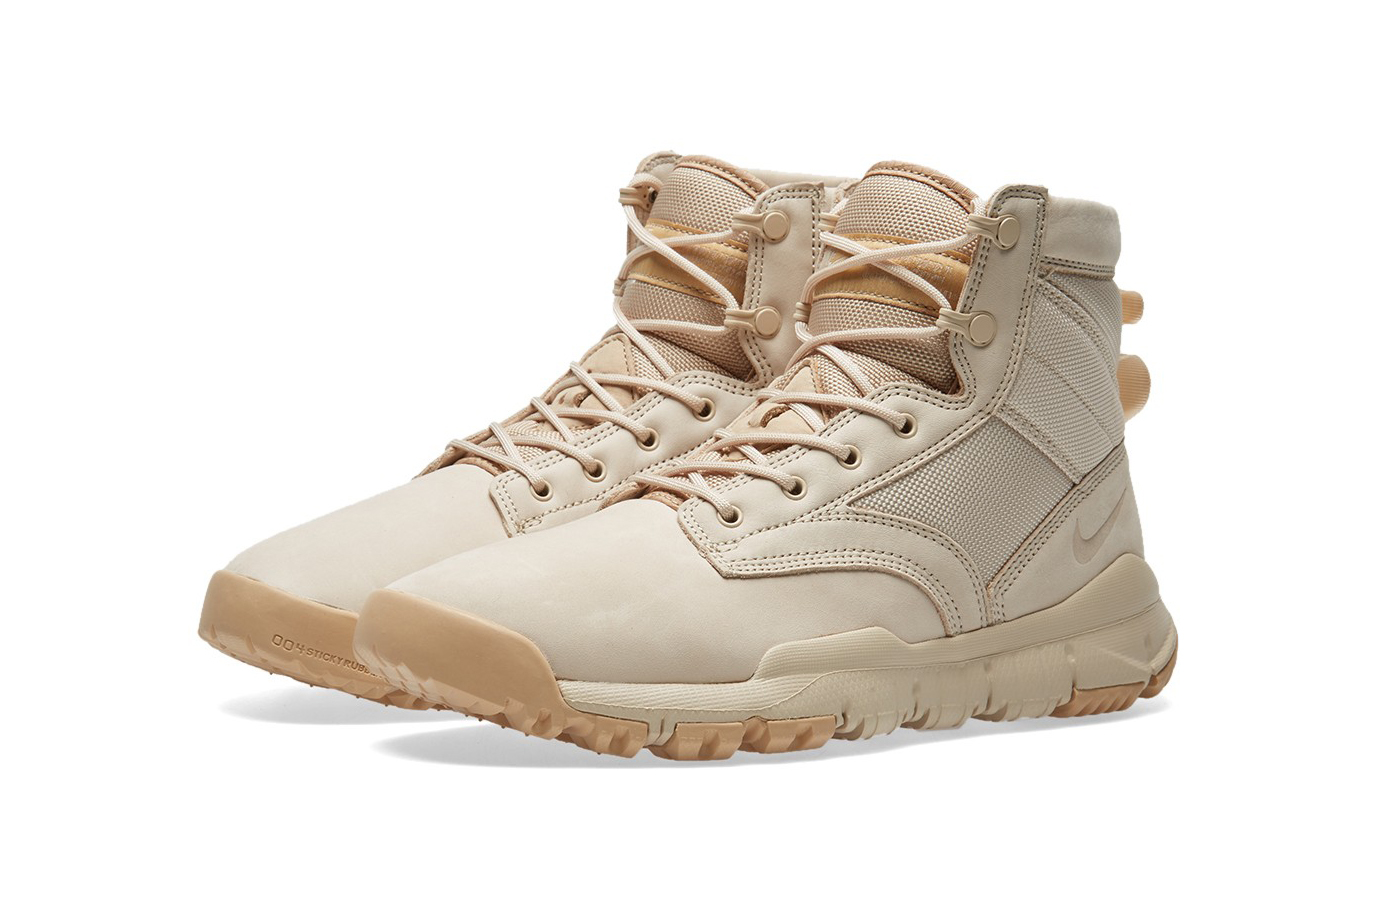 Nike SFB 6 Inch Leather NSW Oatmeal Linen